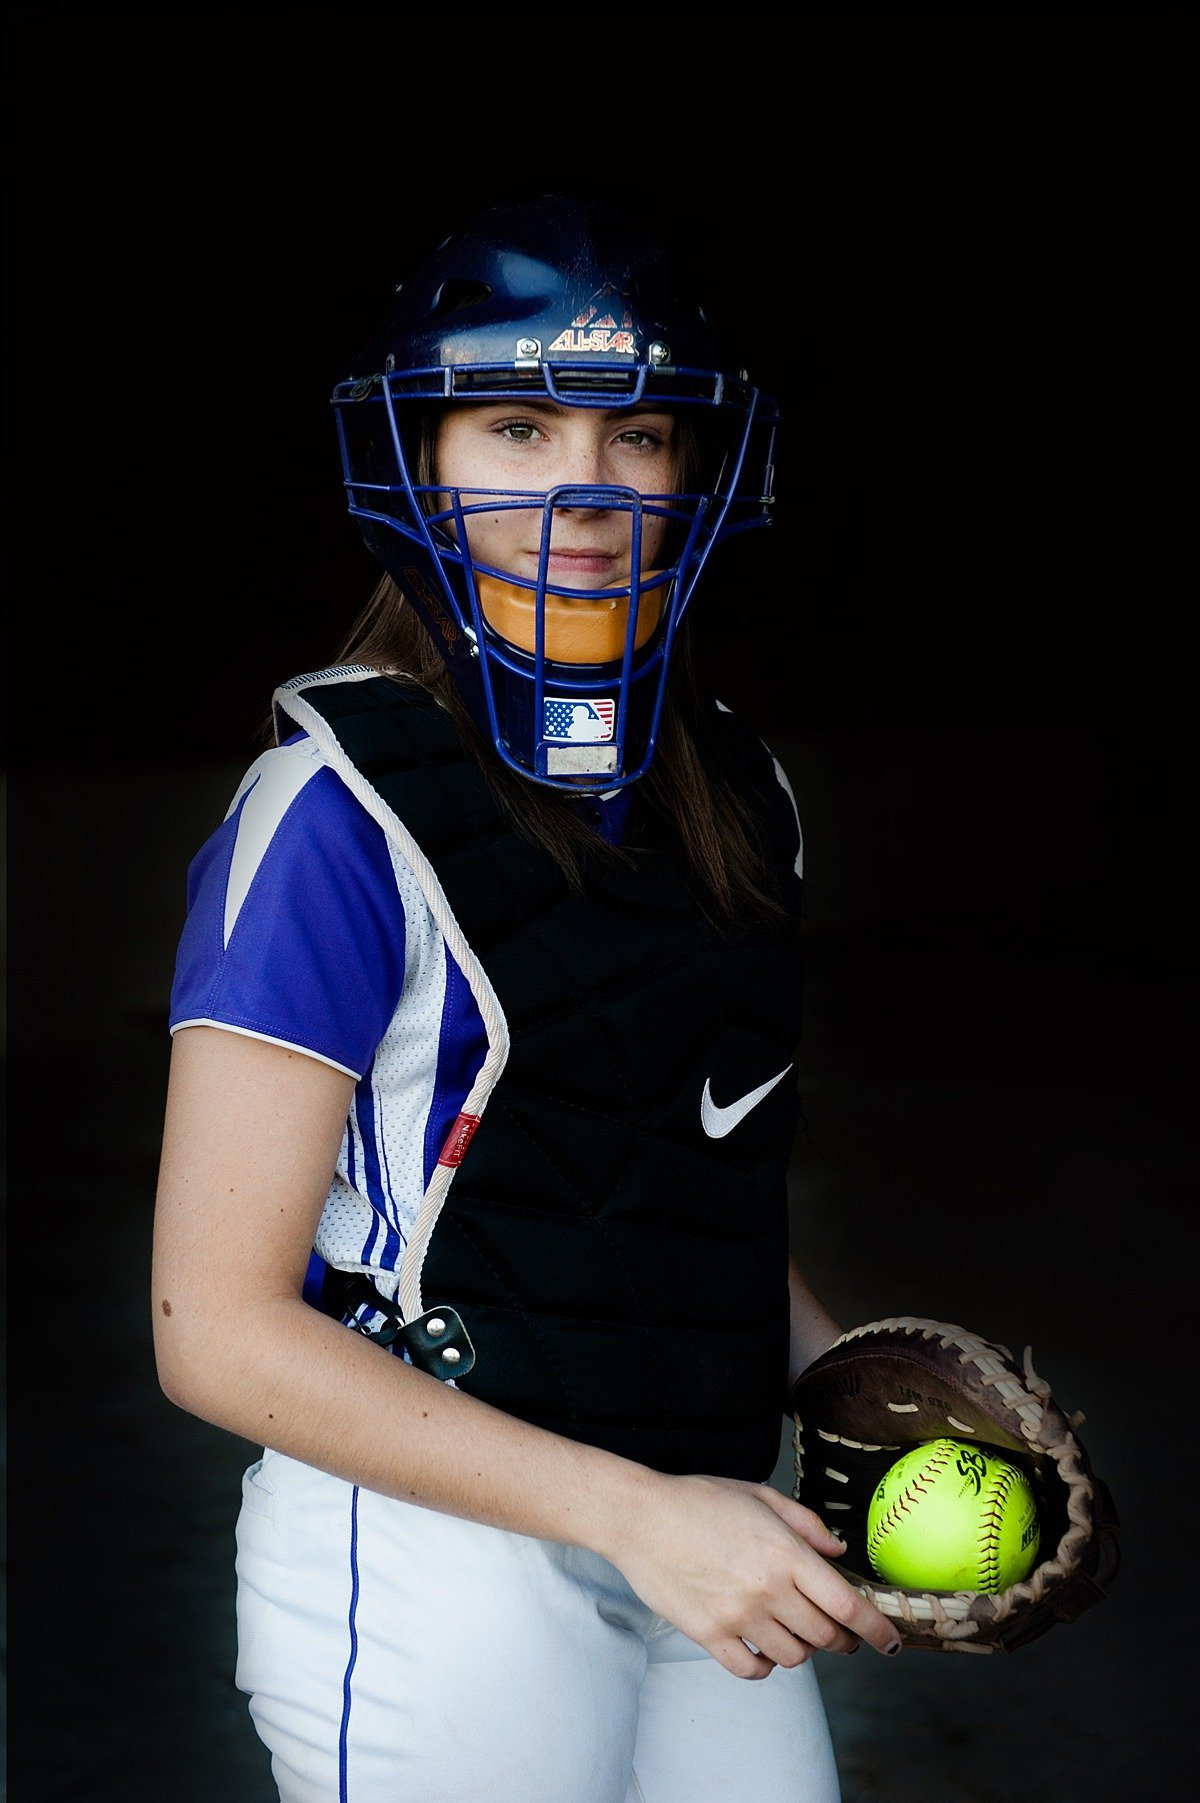 Laura Luft High School Senior Photography Elba NY  Albion Central Girl Tall Grass Flowers Softball Urban Country Session-19